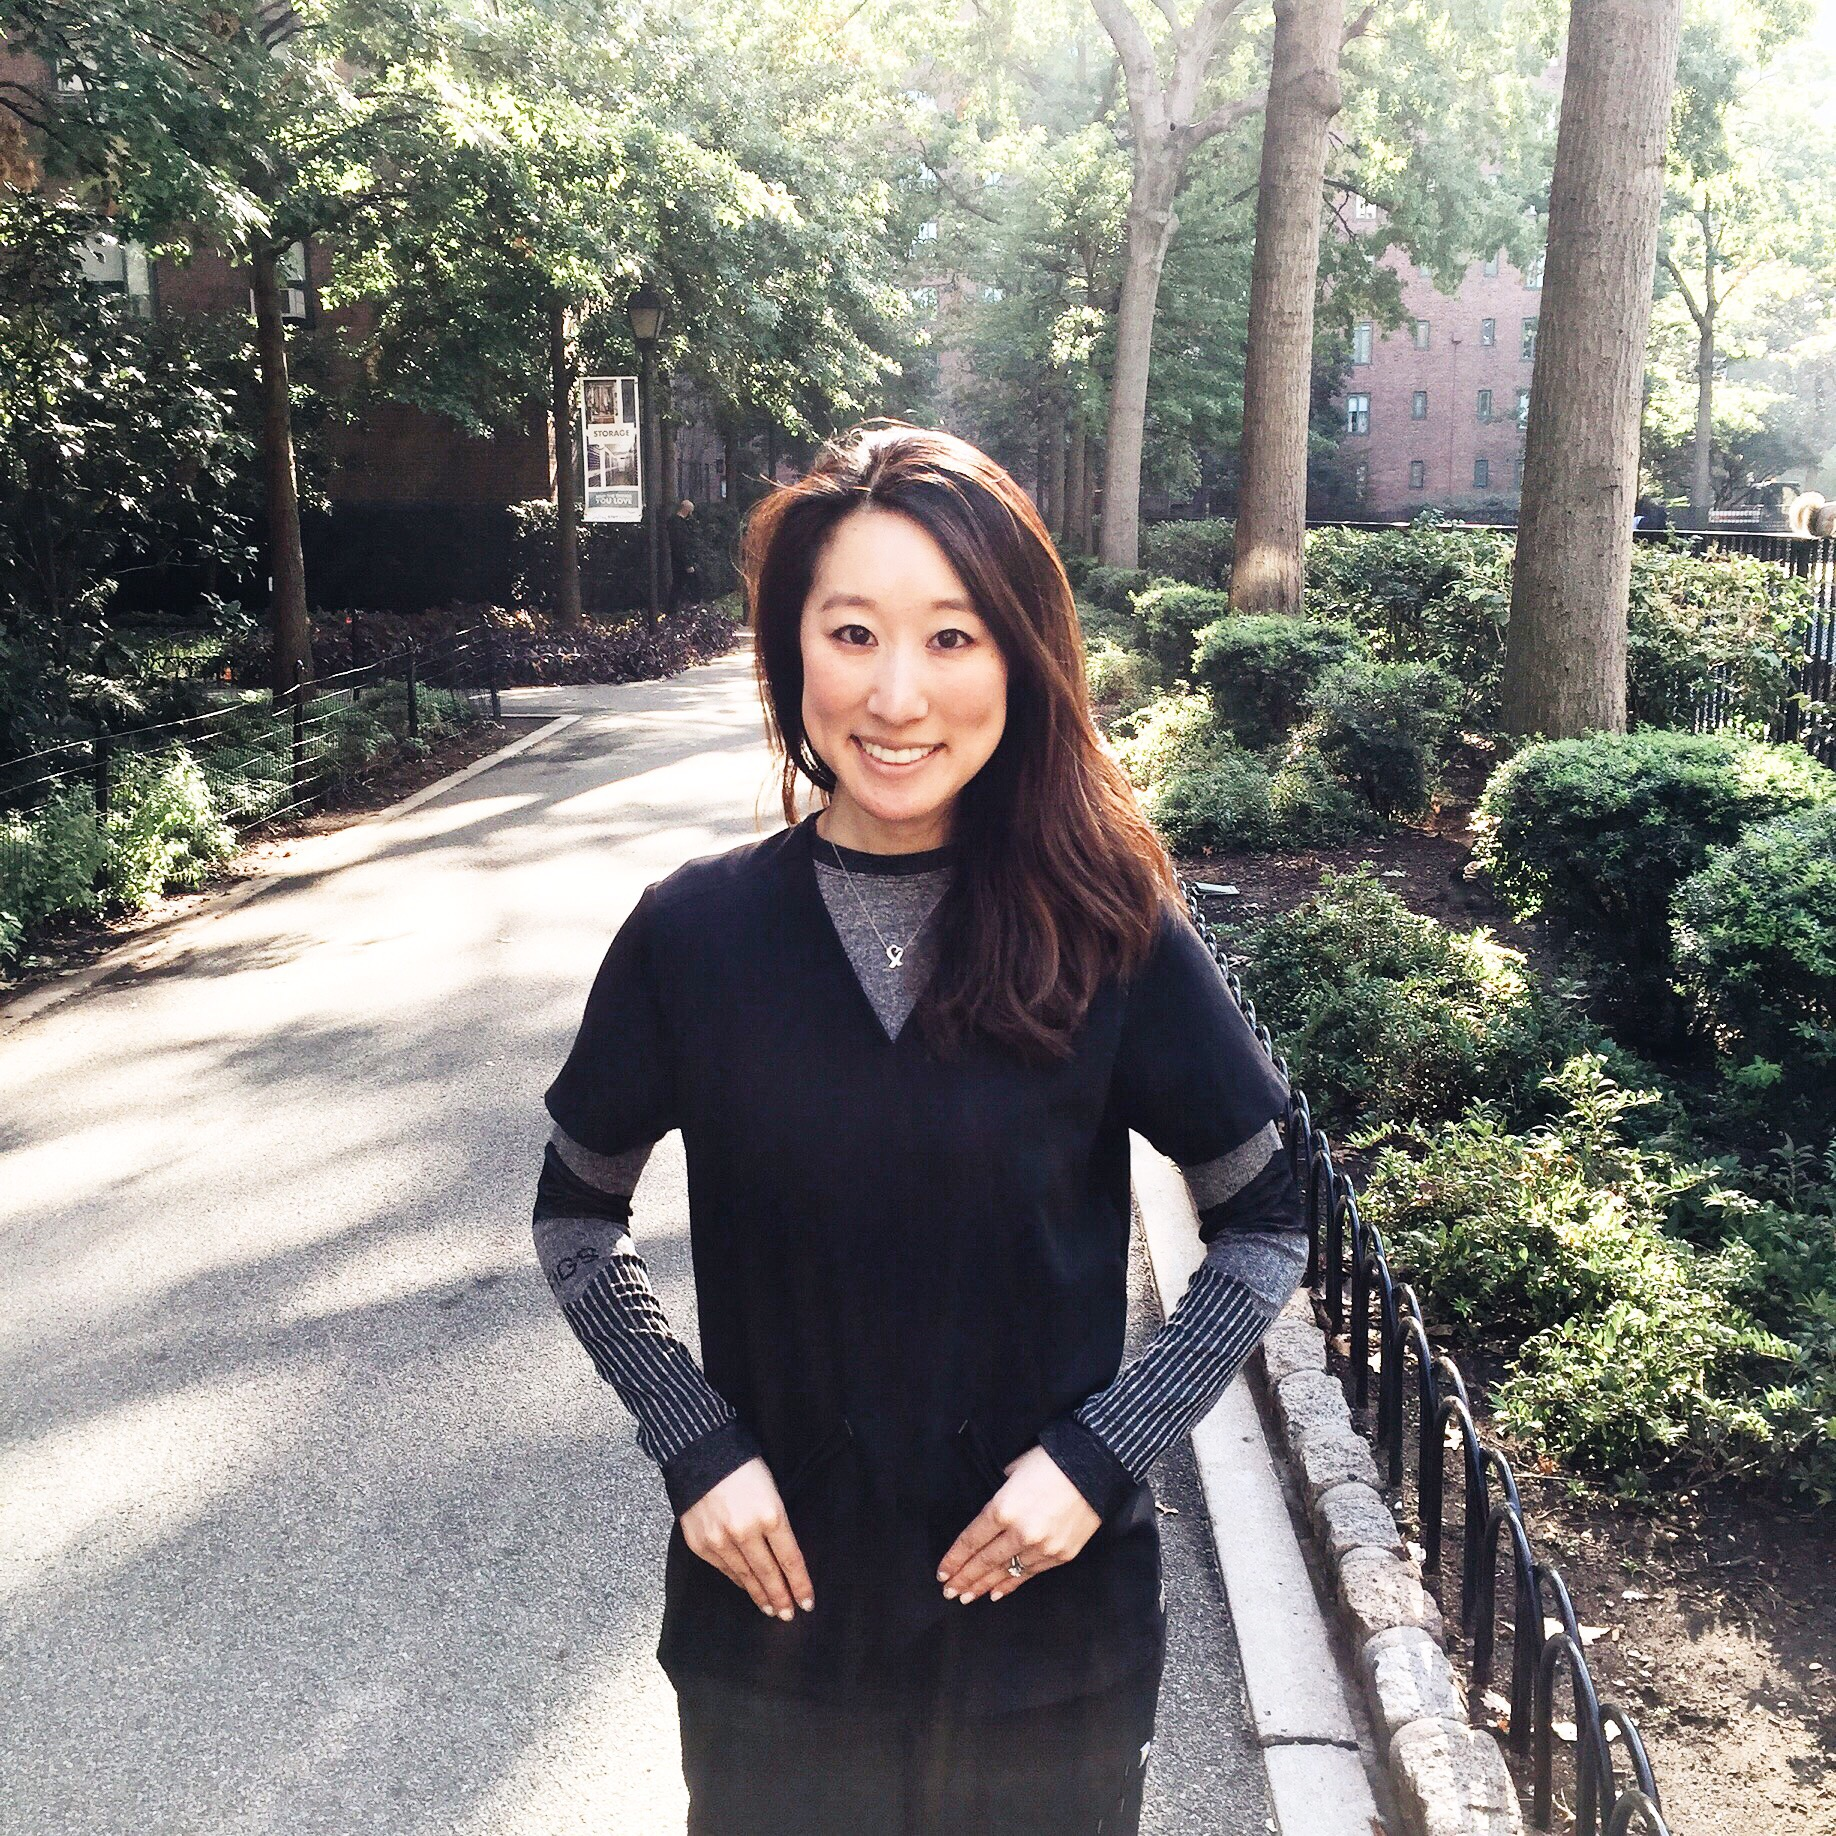 A Day in the Life of a Dermatology Resident - Tea with MD: A